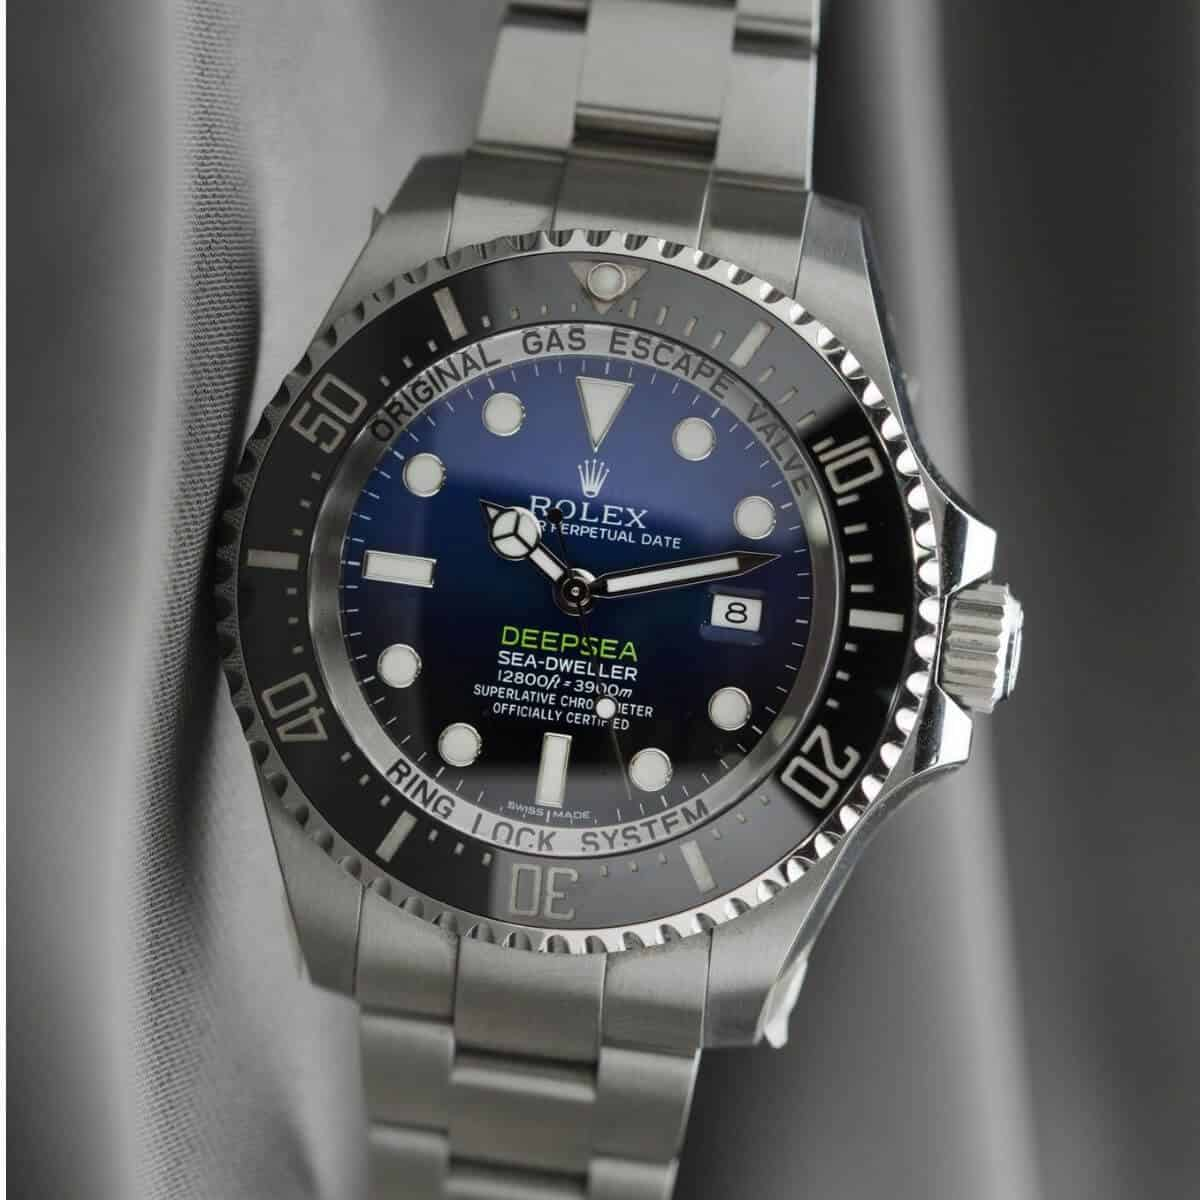 Rolex watch on grey cloth.